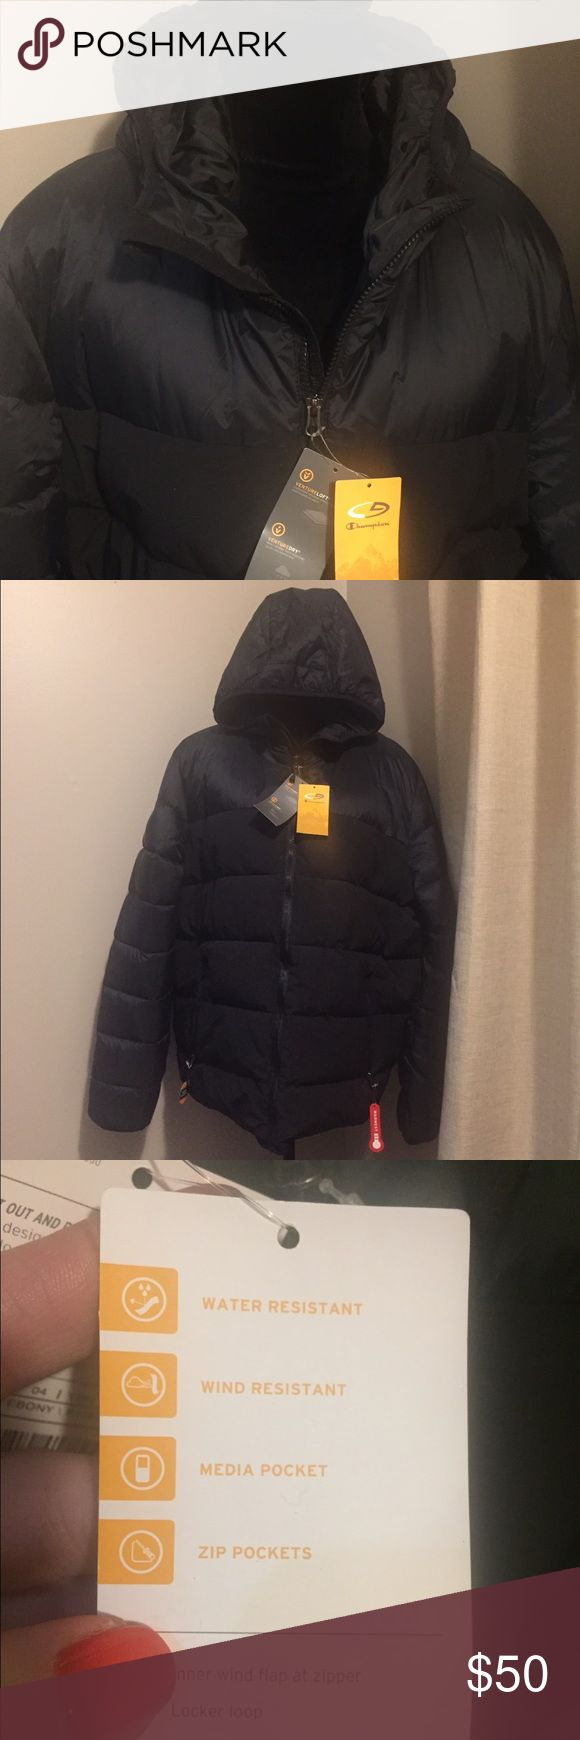 Brand New Men's Puffer Coat!! Love this for sleek looking Puffer Jacket!!  Brand New and Never Worn with tags. Champion Jackets & Coats Puffers